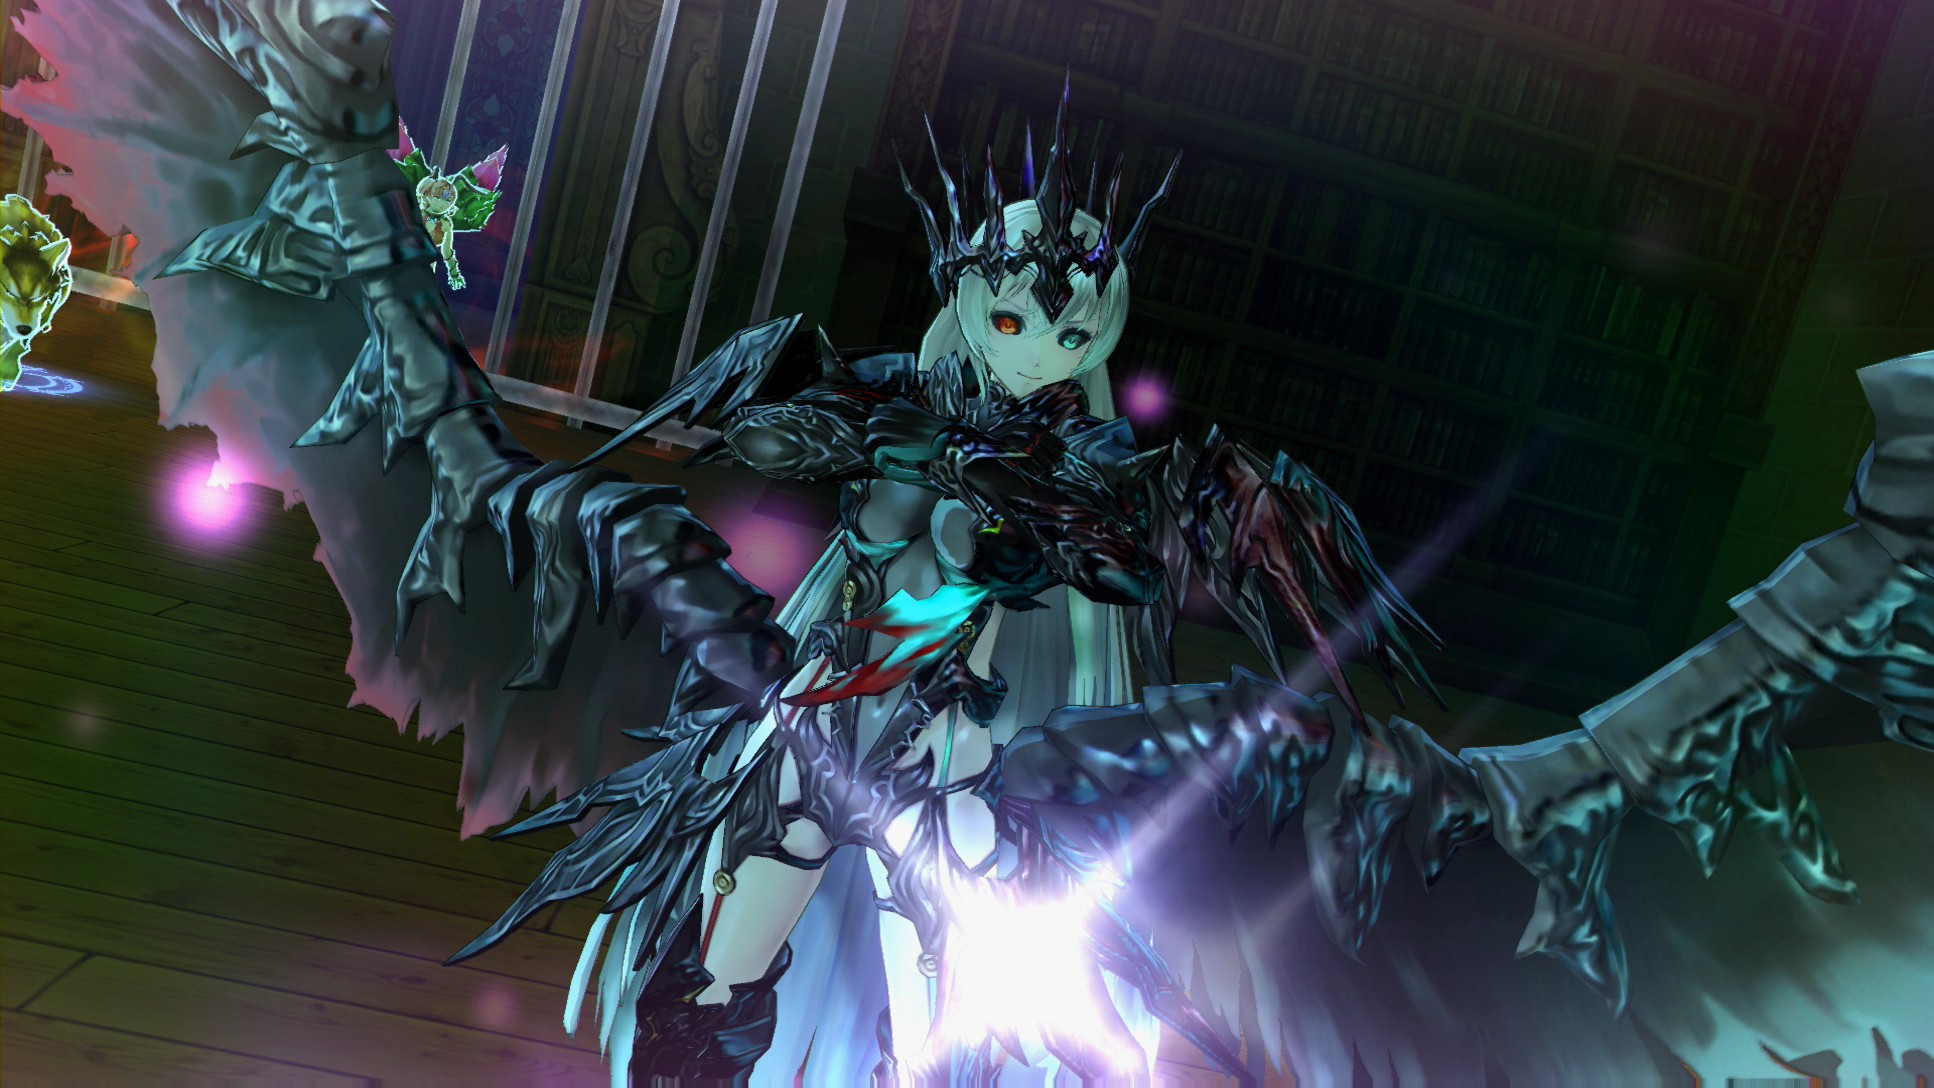 Arnas unleashes her Nightmare form in Yoru no Nai Kuni | RPG Site